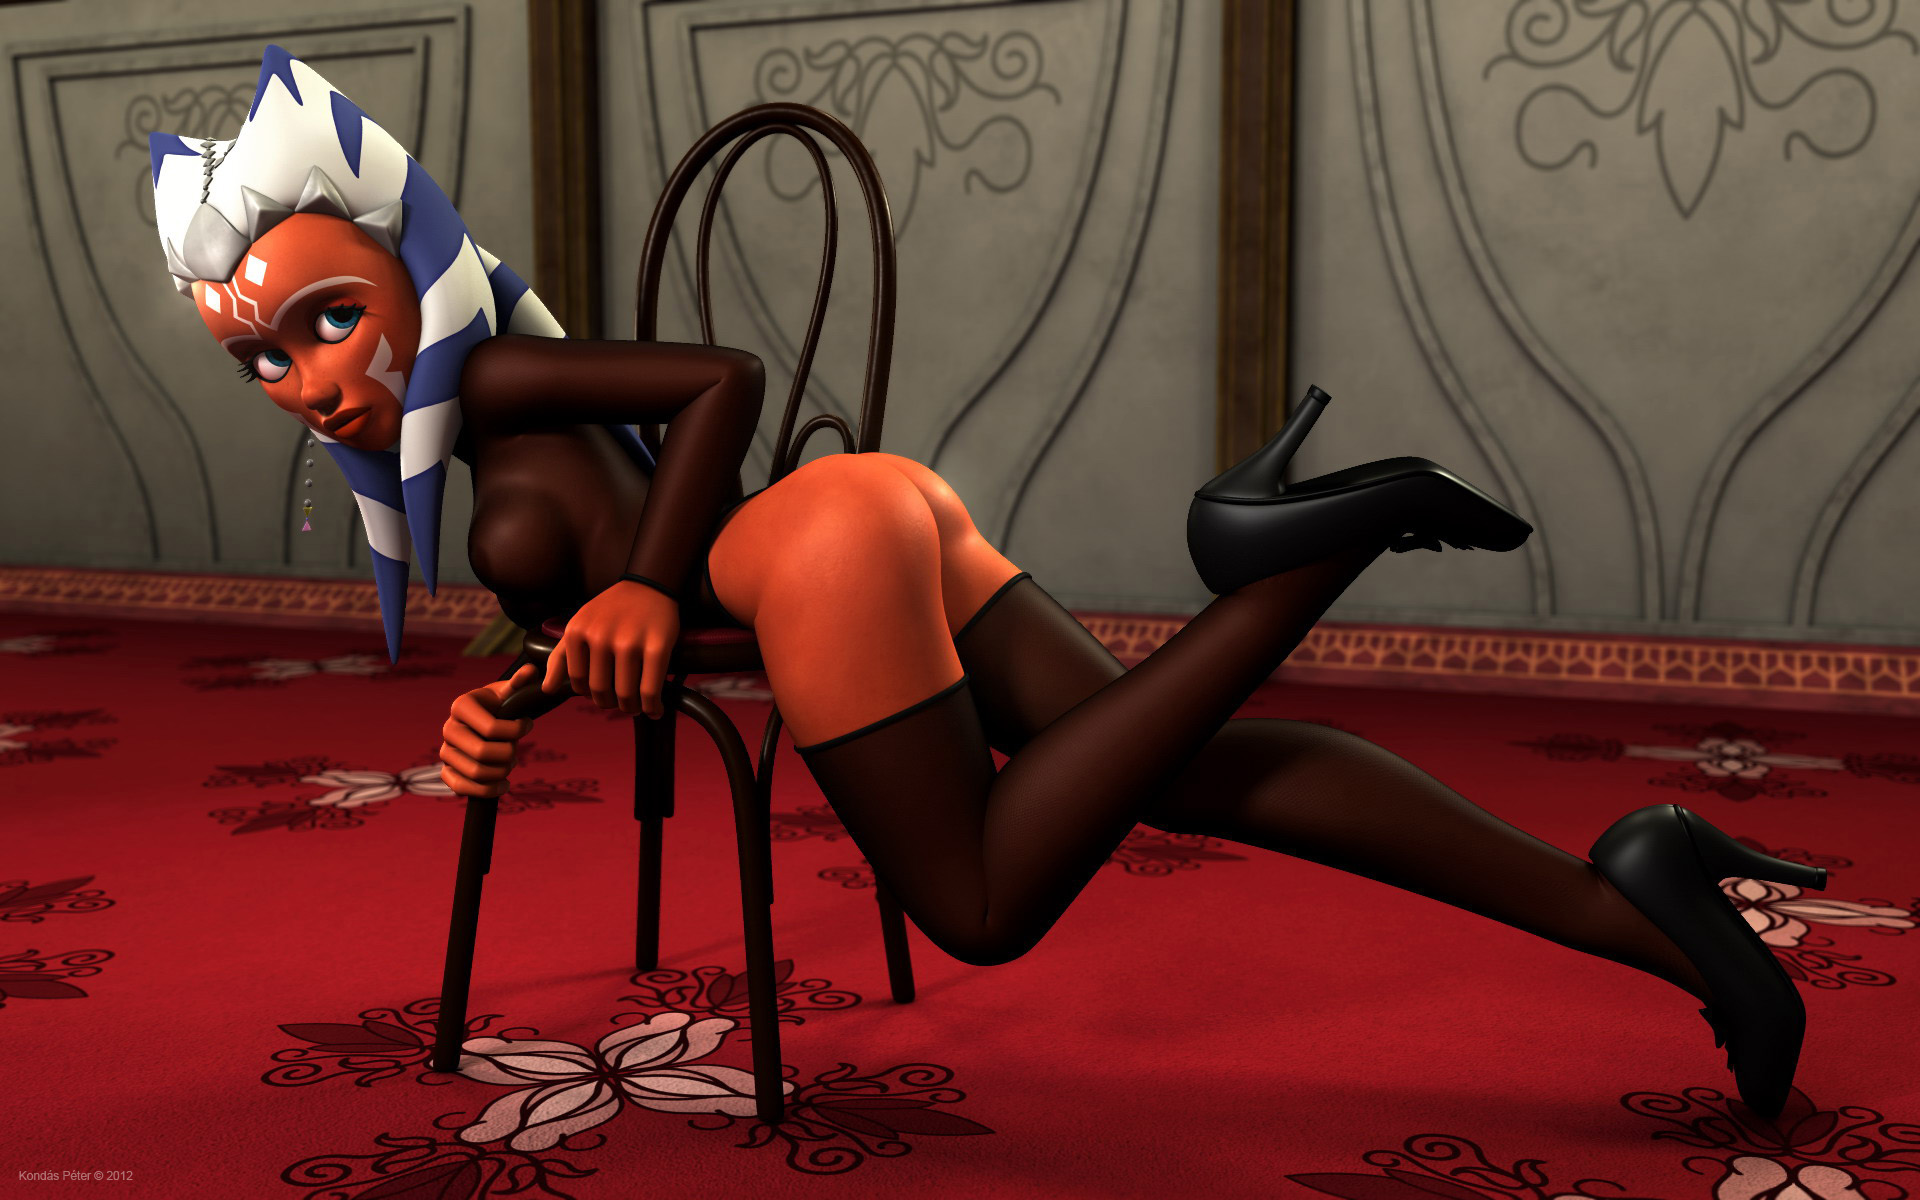 Something is. star wars sexy ahsoka tano porn excellent